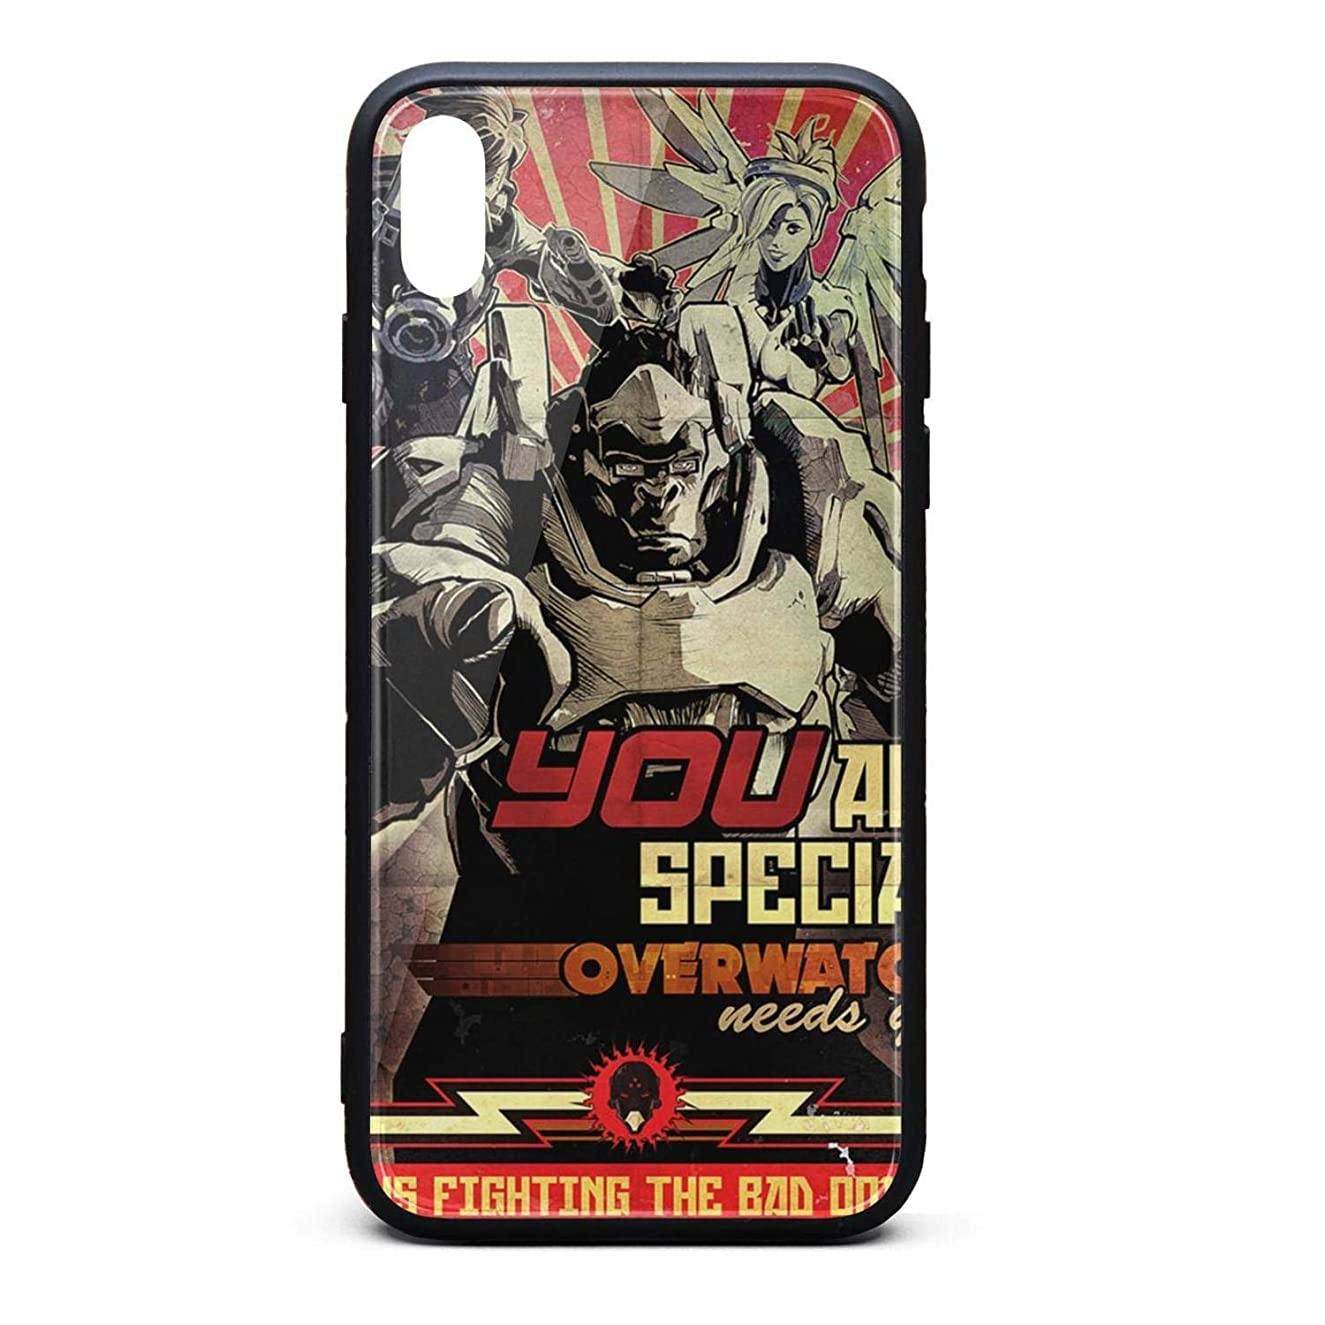 iPhone Xs Max Case - TPU Shockproof Protective Case Cover for Apple iPhone Xs Max Case